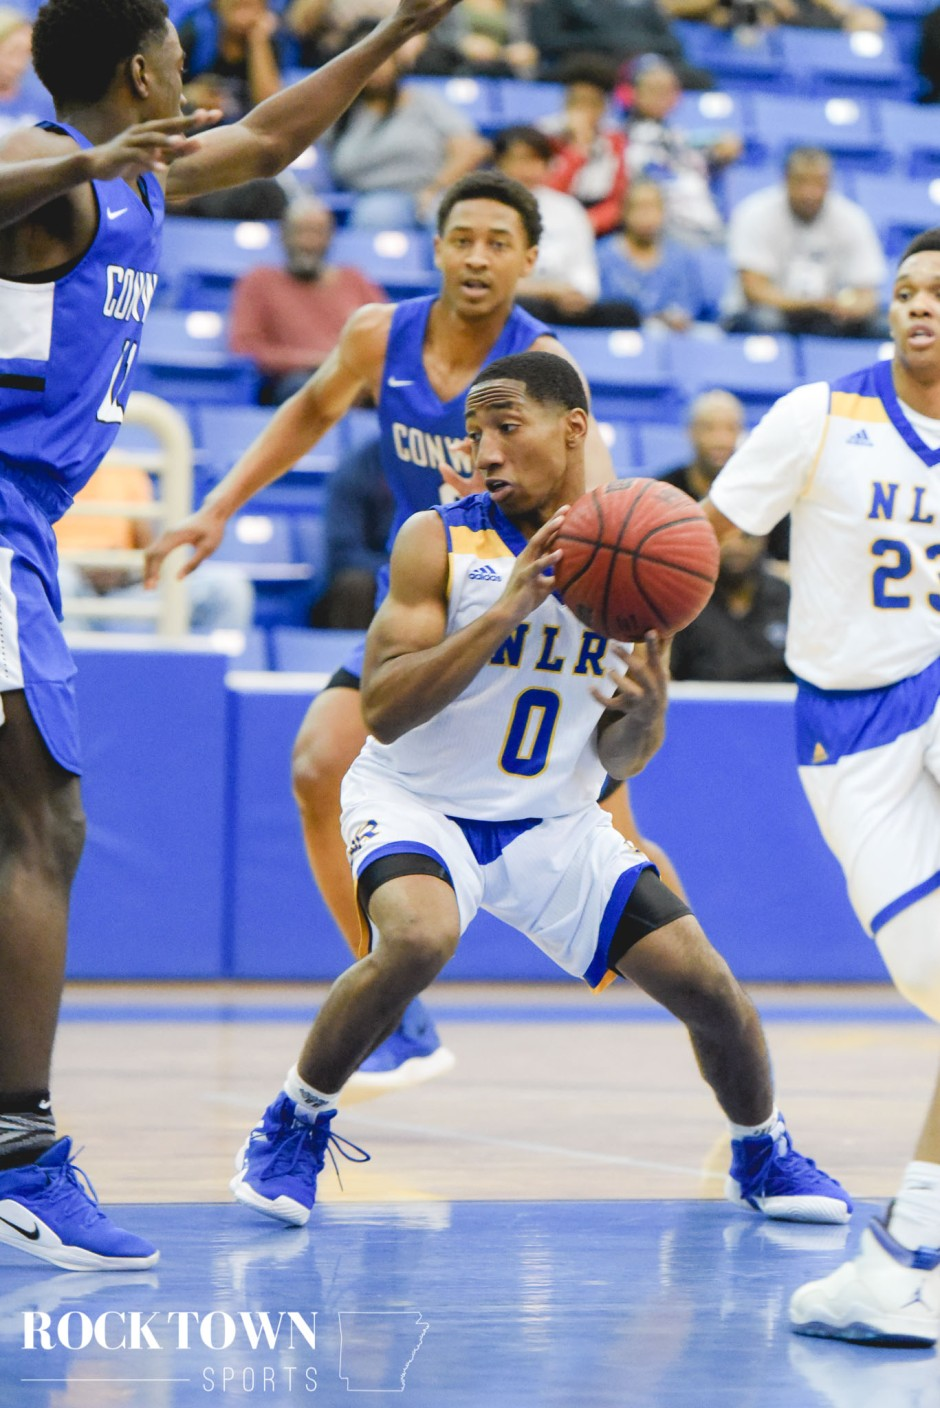 Conway_NLR_bball19(i)-49